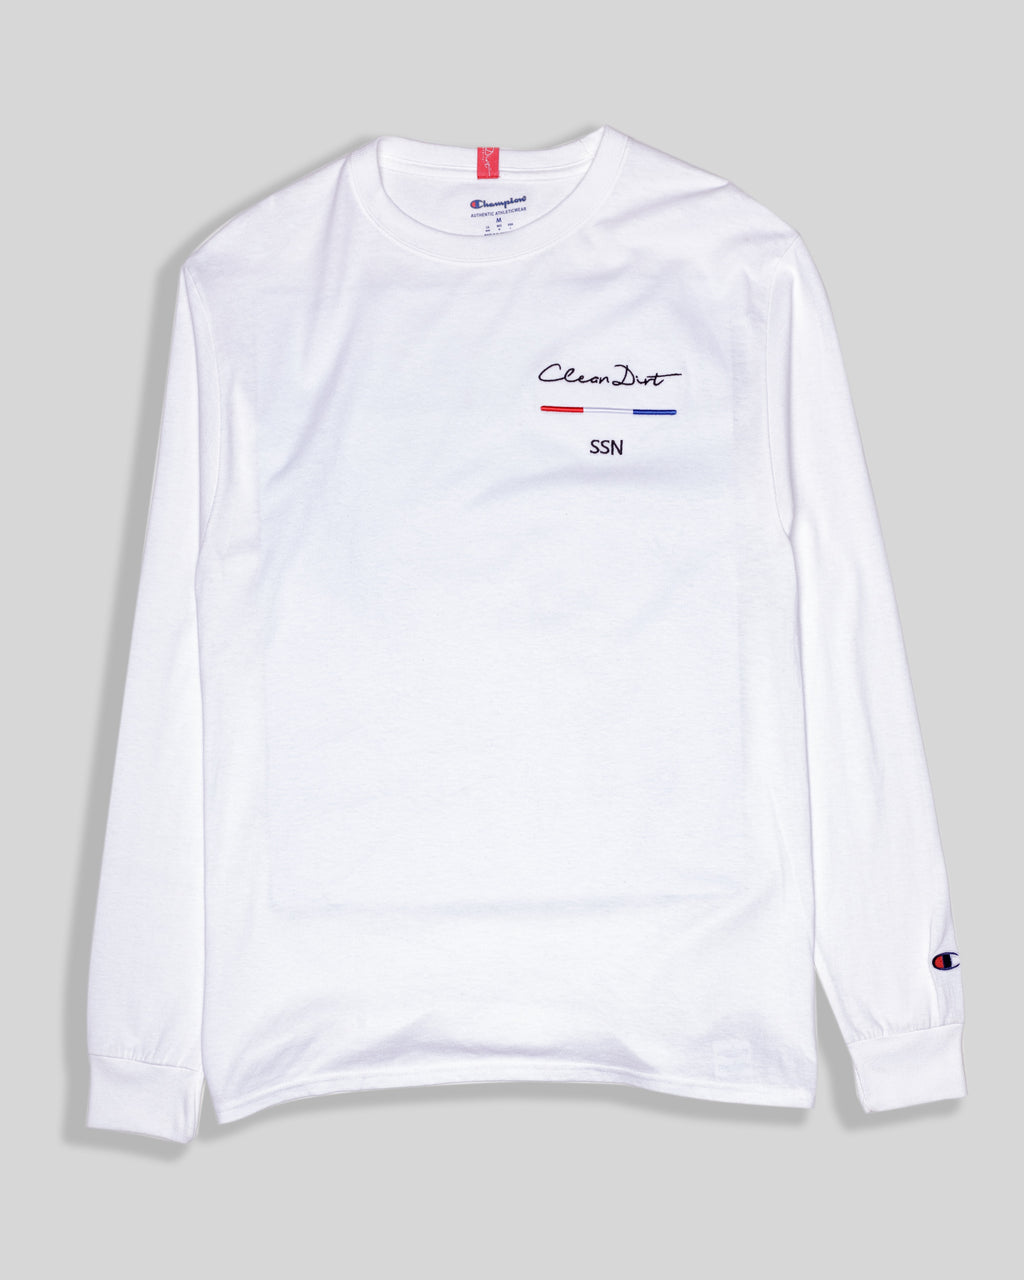 CleanDirt Flag Barcode-White Long Sleeve